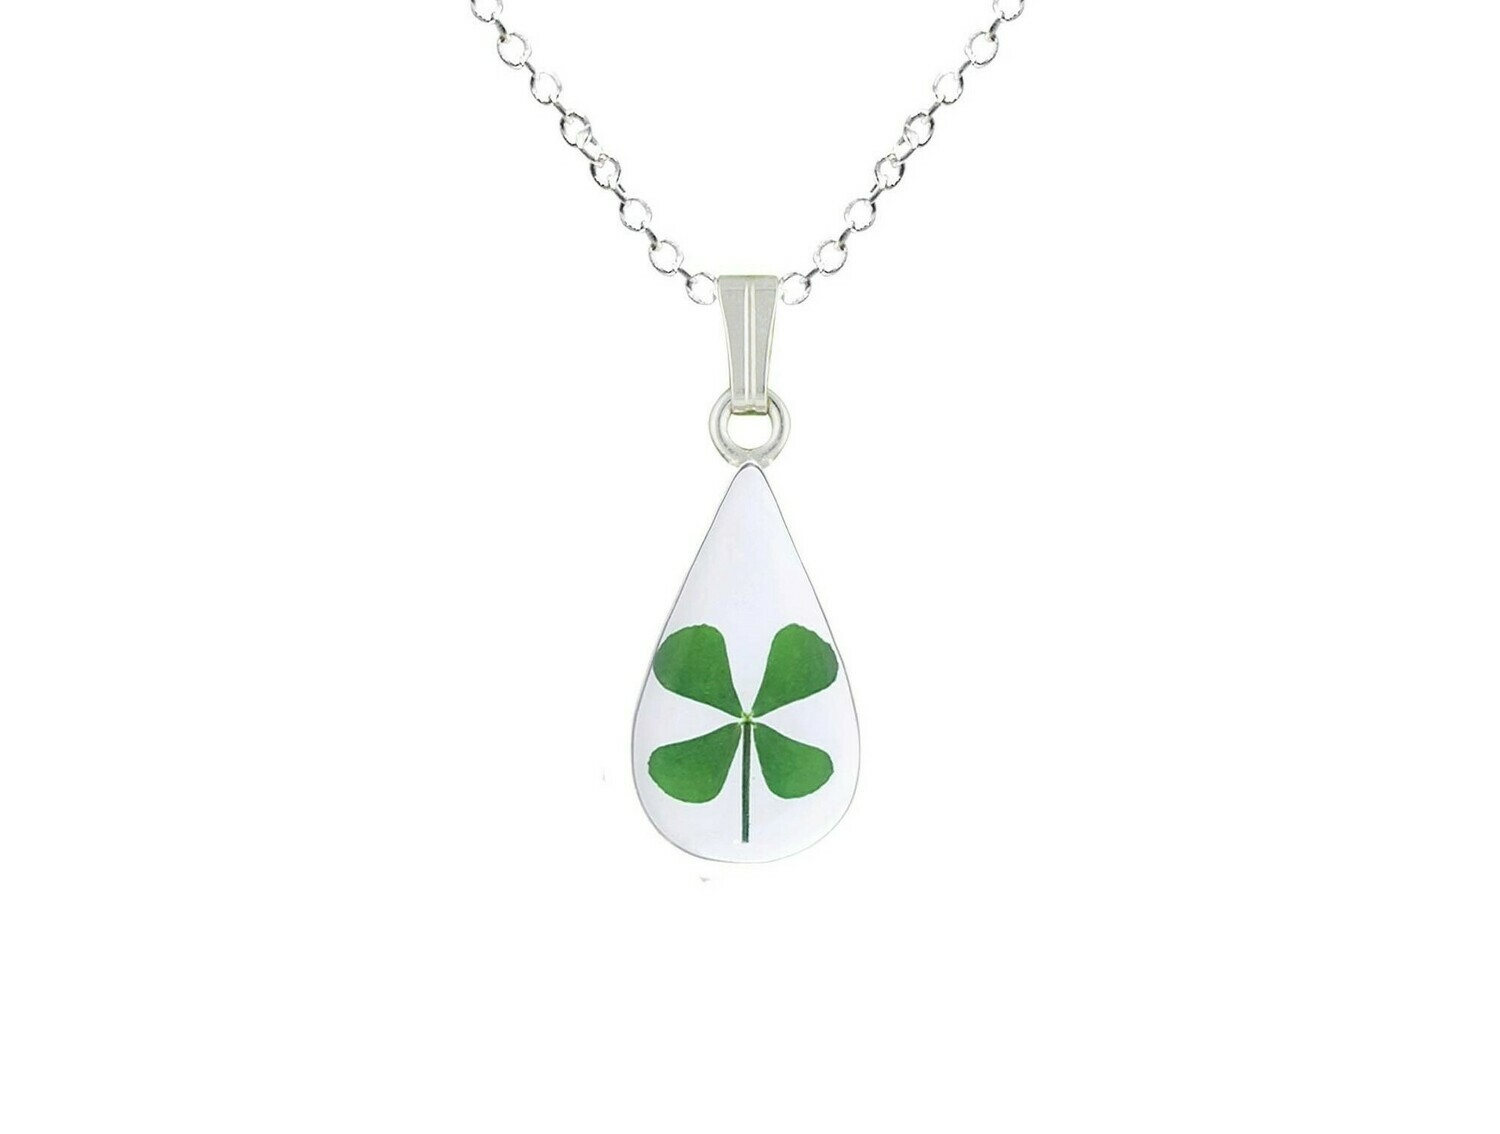 Clover Necklace, Small Teardrop, Transparent.